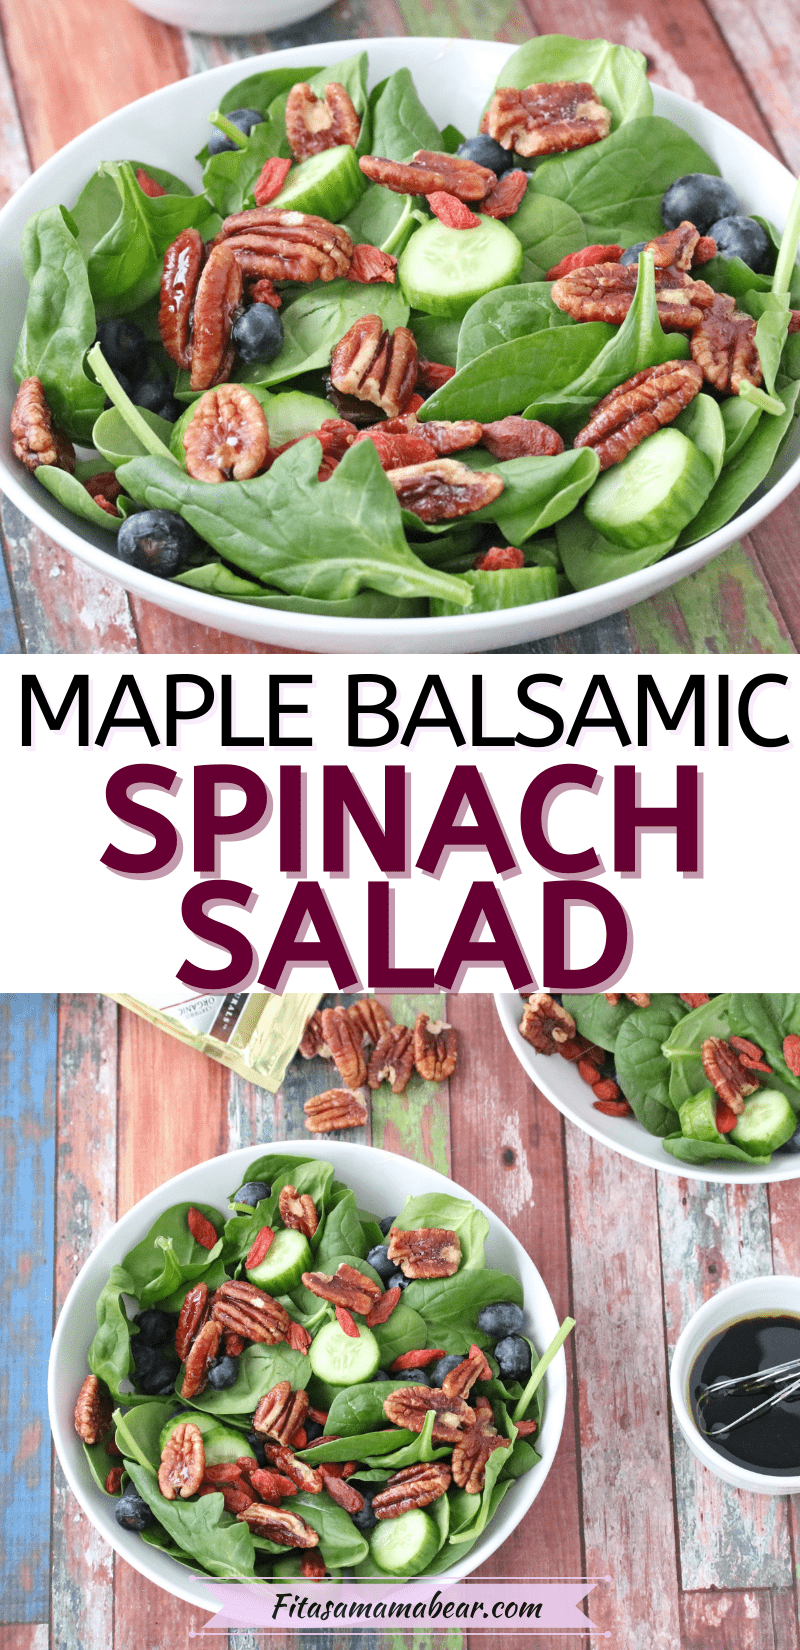 Pinterest image with text: Spinach salad with pecans in a white bowl with another bowl of salad behind it and pecans on the table